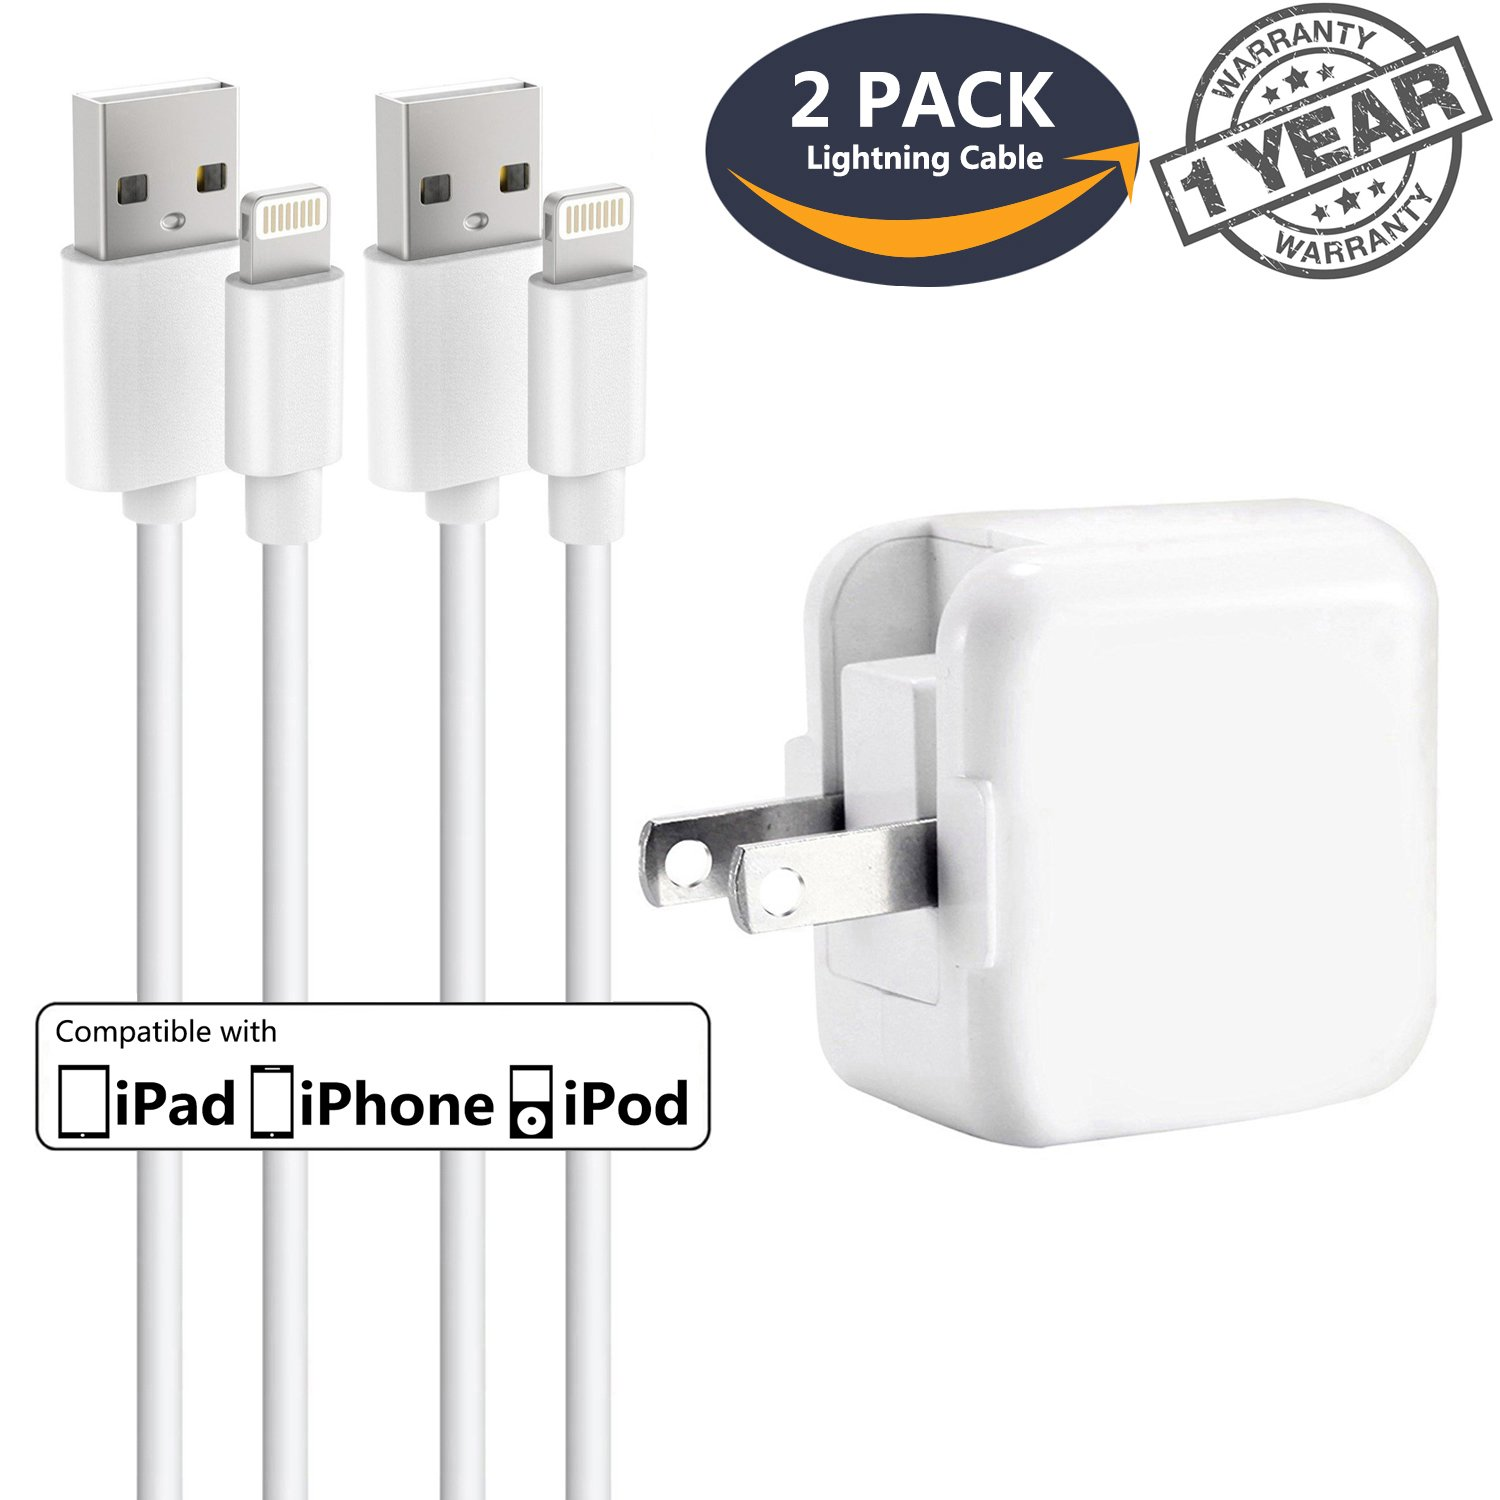 iPhone Charger iPad Charger,Panmy 2.4A 12W USB Wall Charger Foldable Portable Travel Plug and 2 Pack 8-Pin Charging Cable Compatible iPhone X/8Plus/7Plus/6sPlus/6Plus/8/7/6/6s/SE/5s/5, iPad 4/Mini/Pro